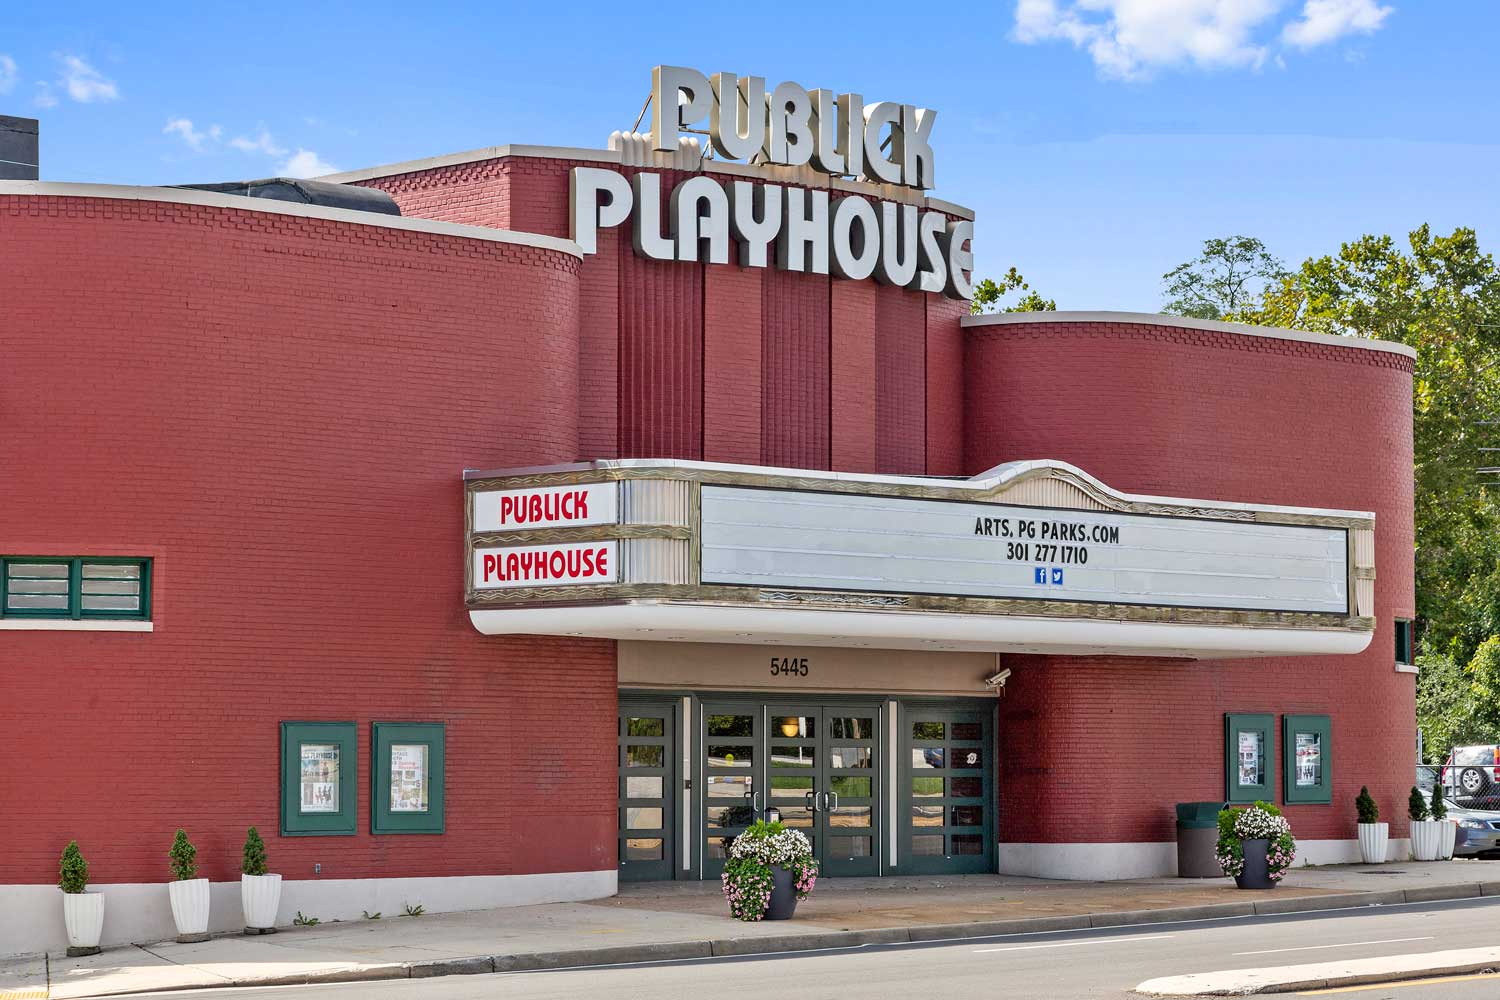 Prince George's Publick Playhouse  is 10 minutes from Heritage Square Apartments